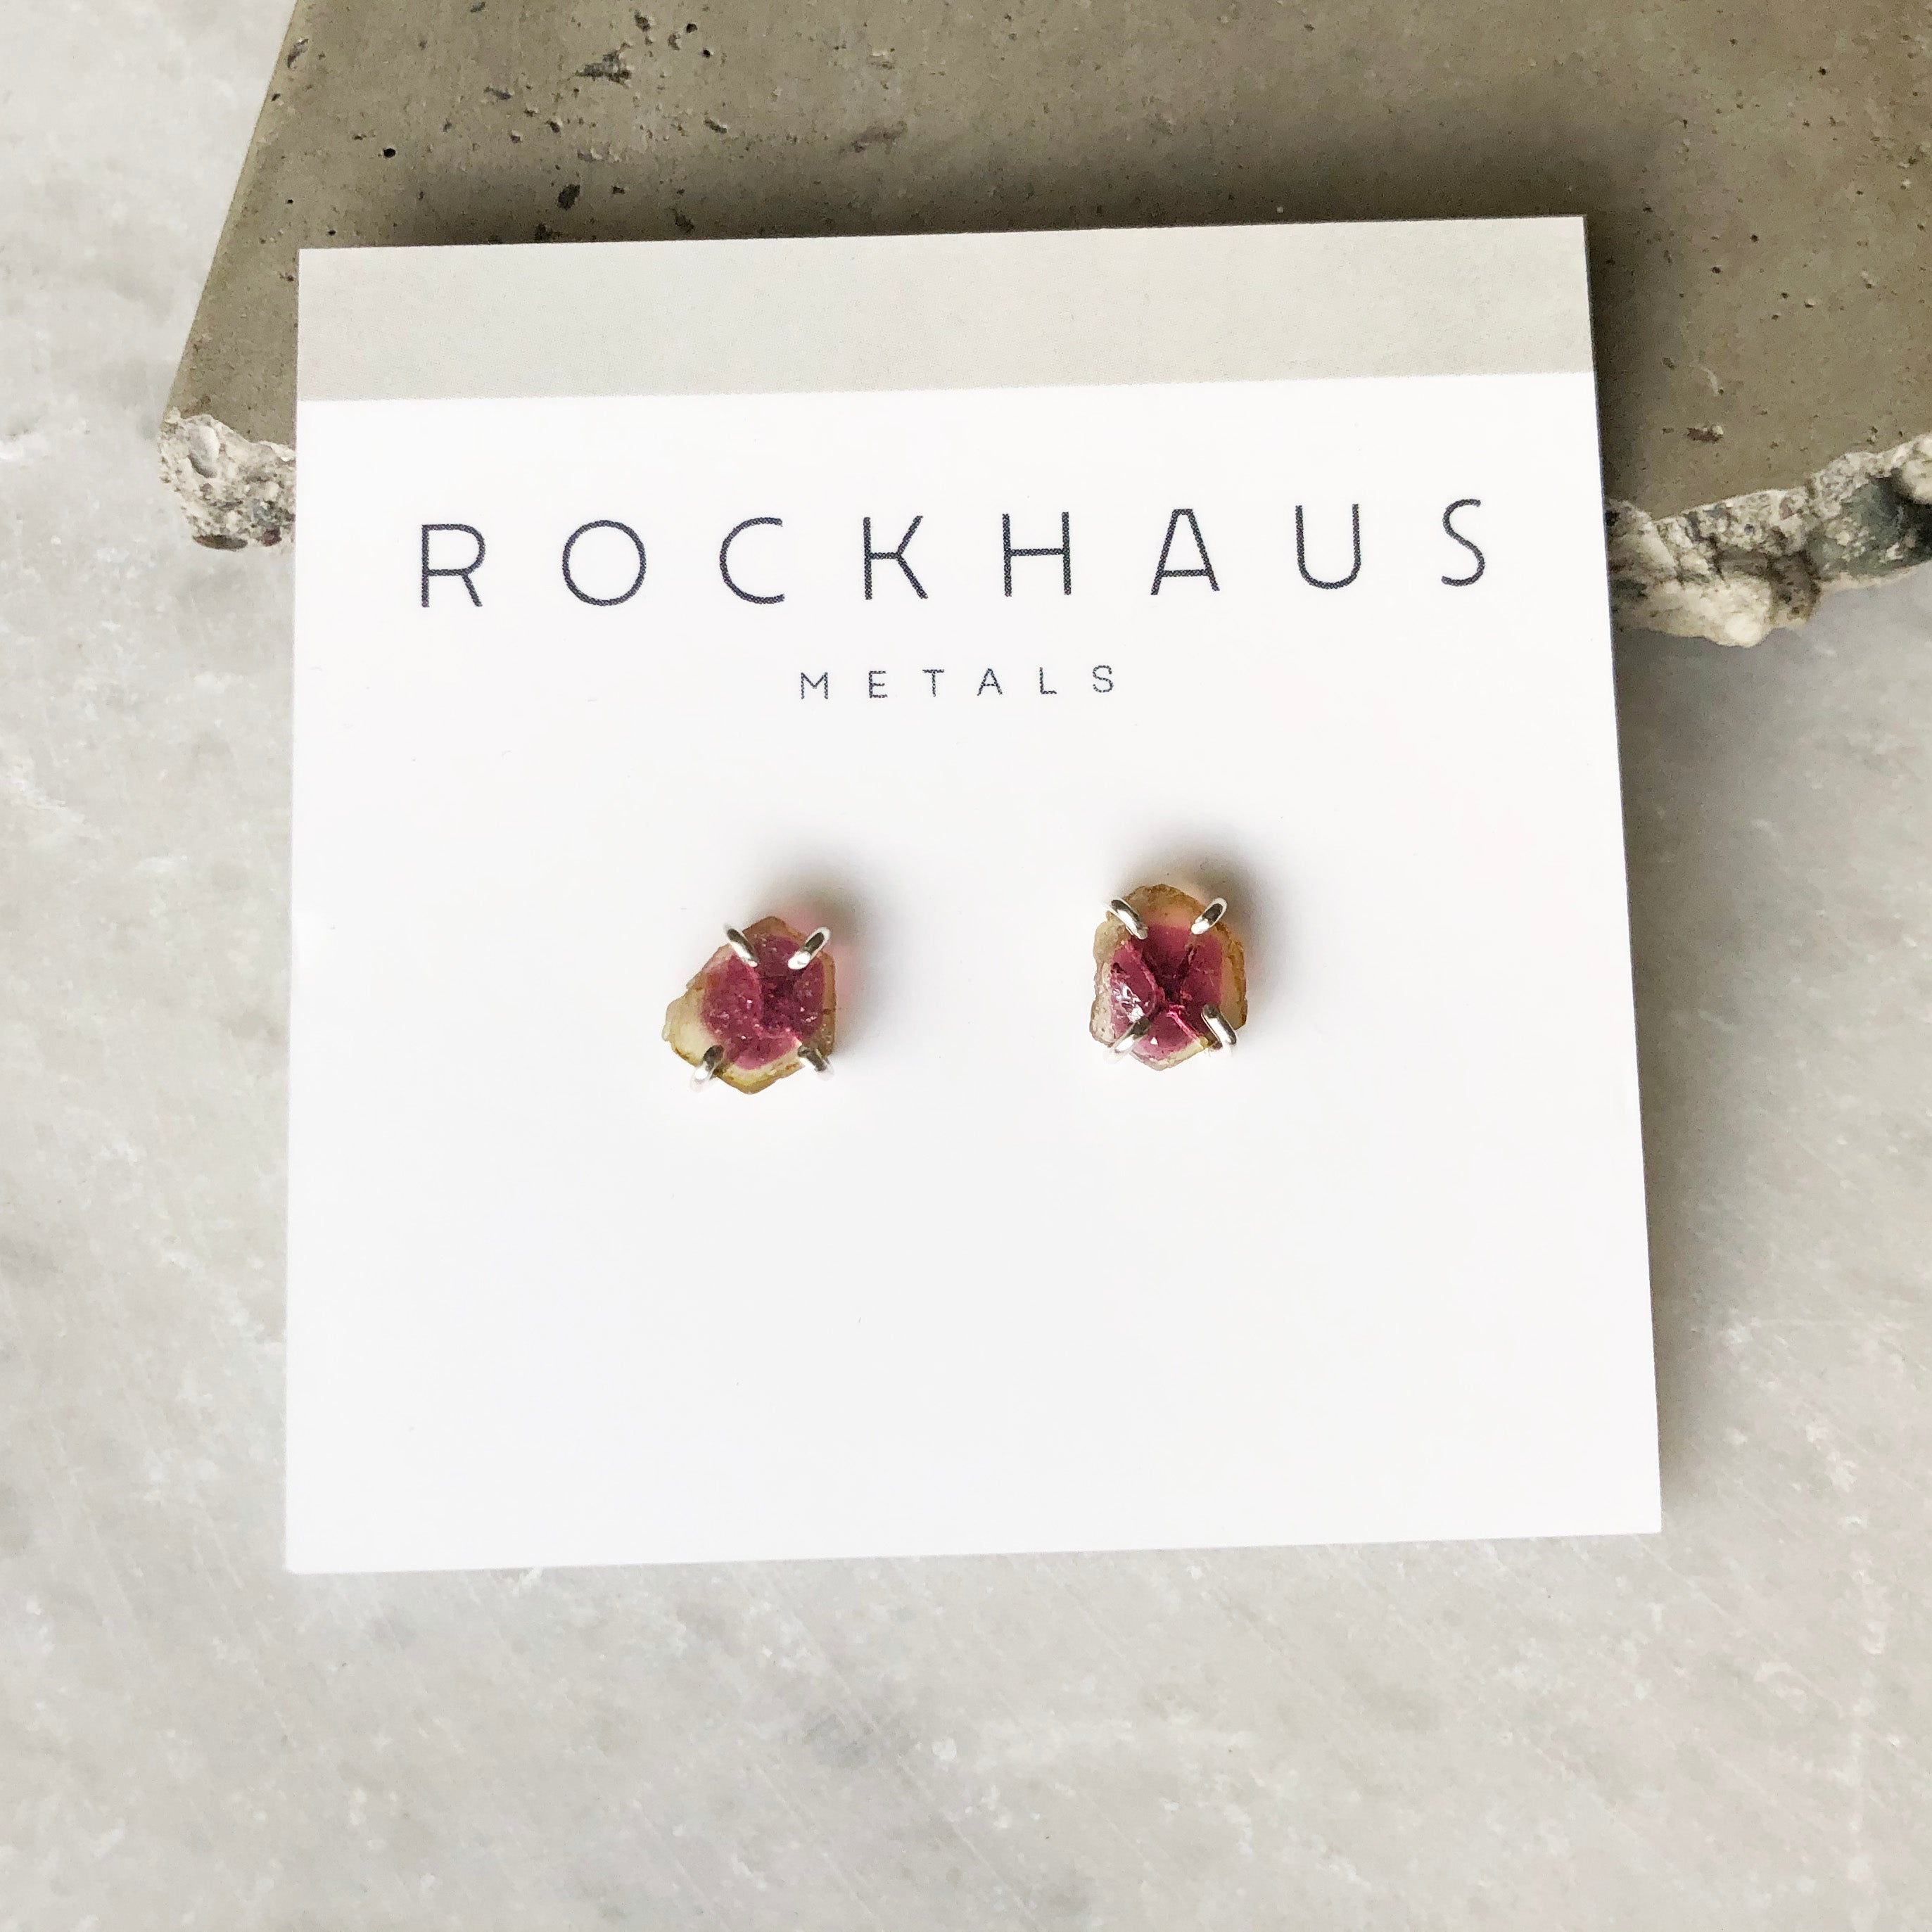 Pink and Light Green Tourmaline Studs by Rockhaus Metals